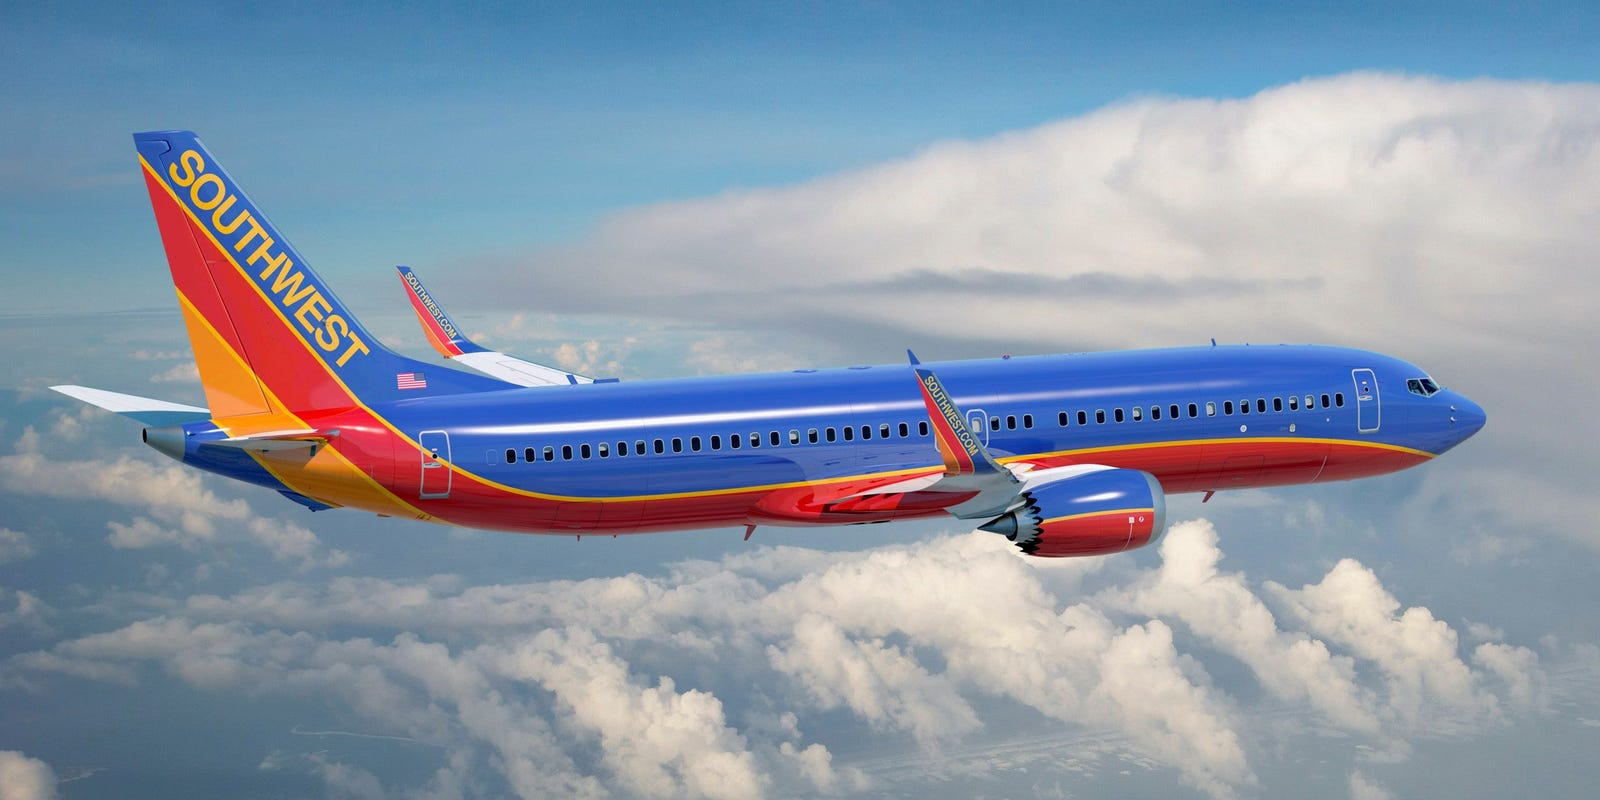 The Boeing 737 Max jetliners appears to be getting a new name